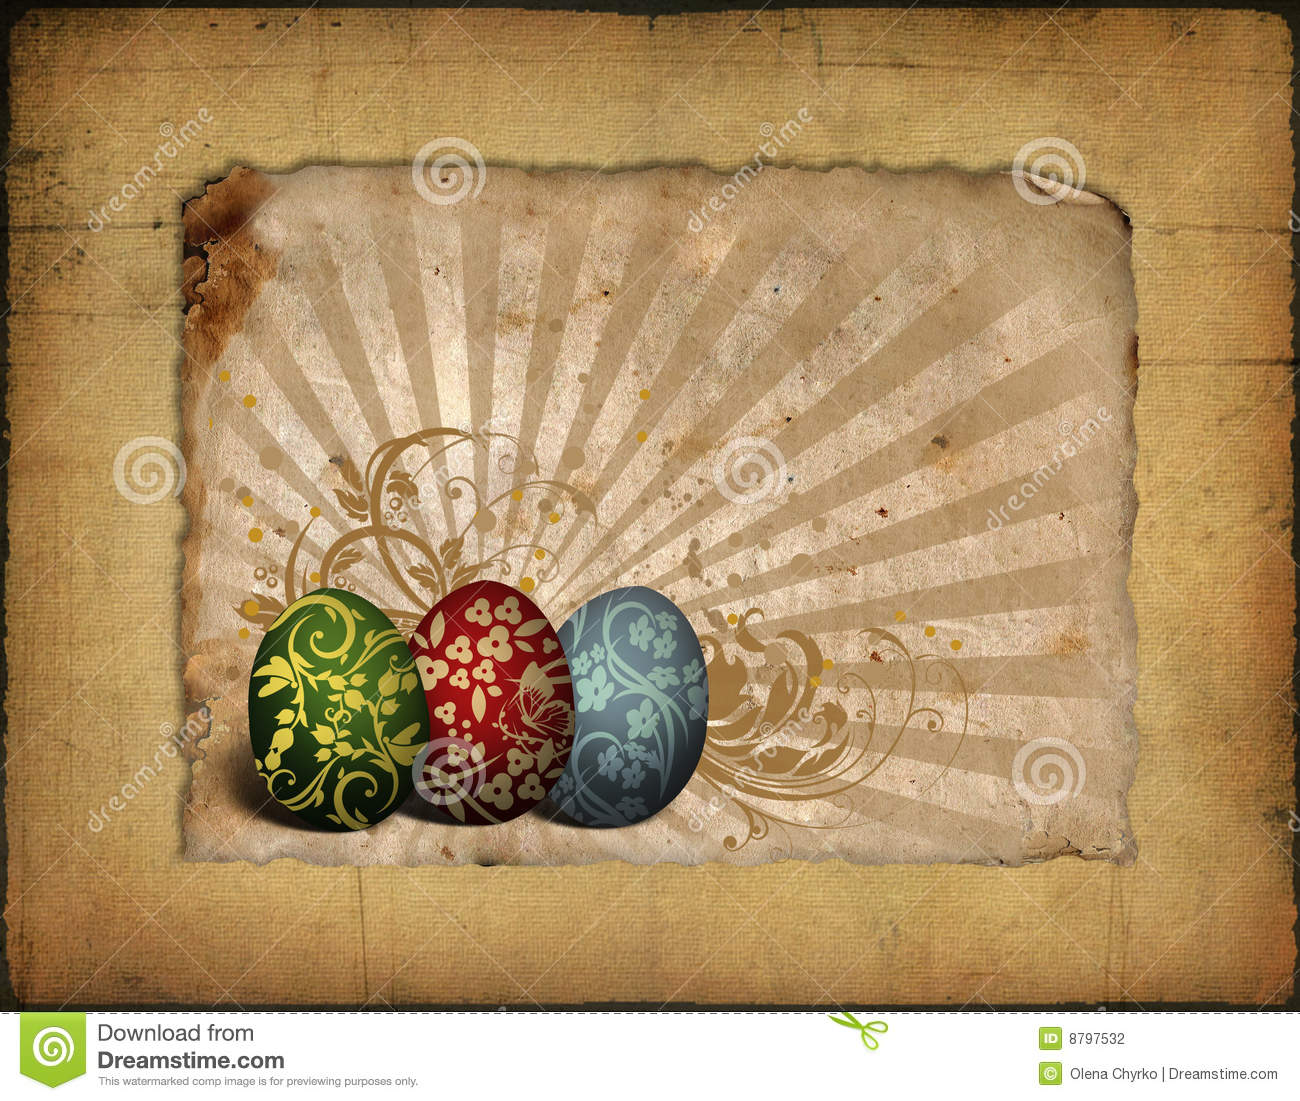 painted easter eggs on vintage background image stock